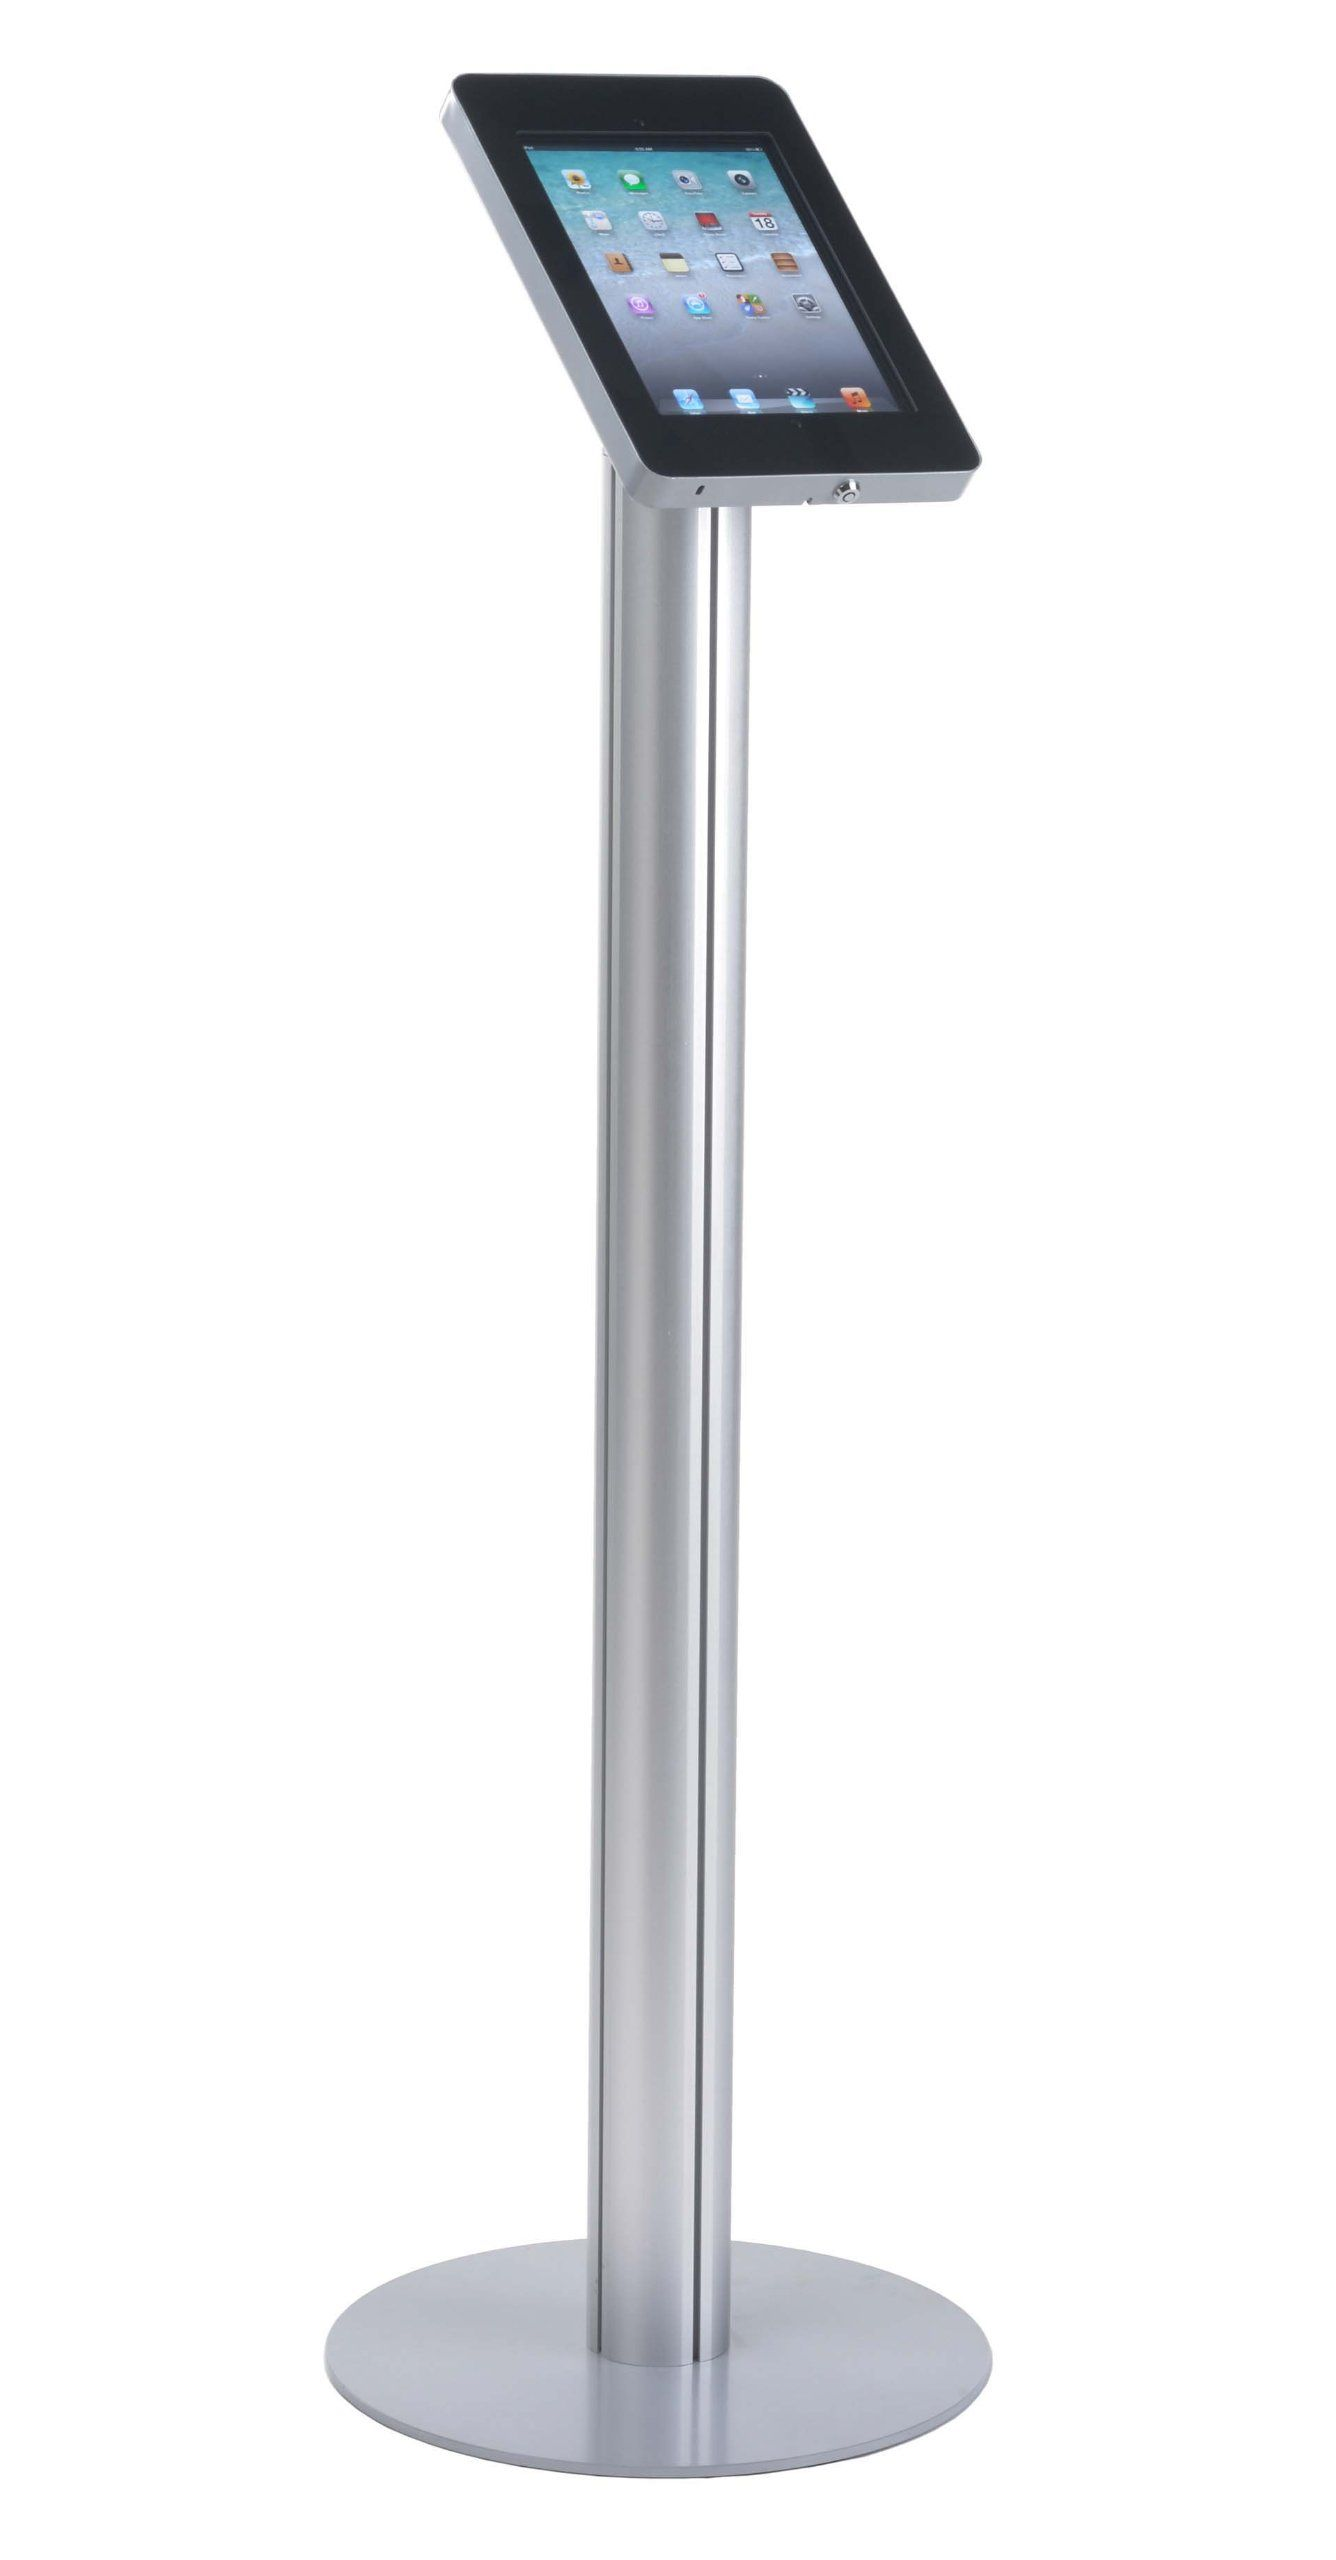 Displays2go Pedestal Stand for iPad 2, 3, 4, and Air